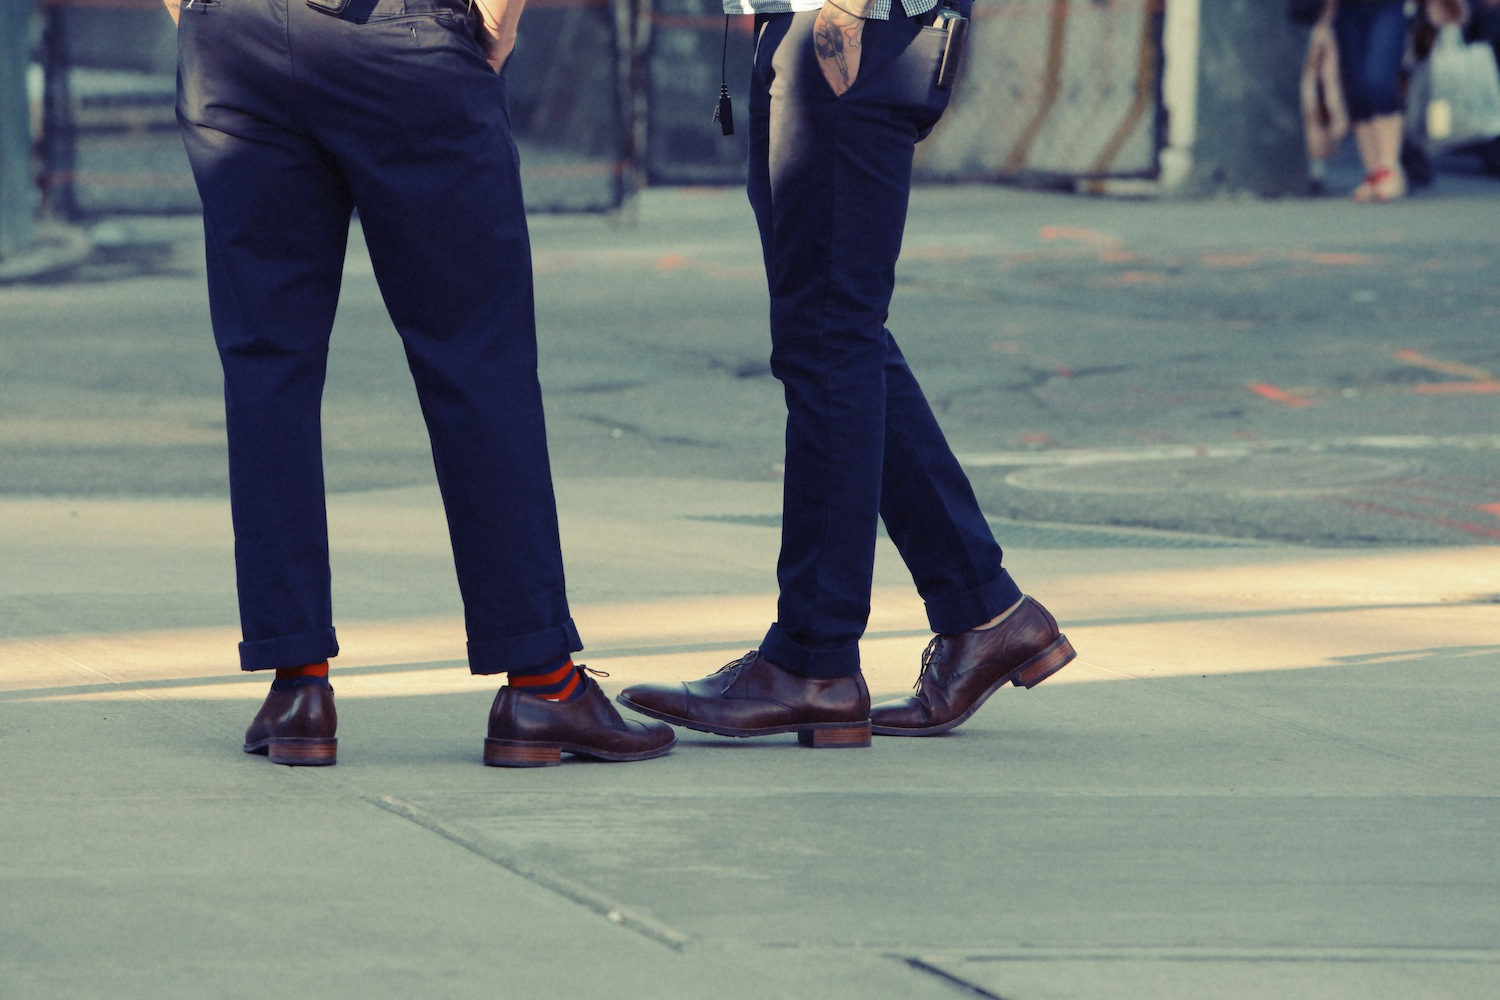 Life-of-Pix-free-stock-photos-city-man-shoes-legs-leeroy